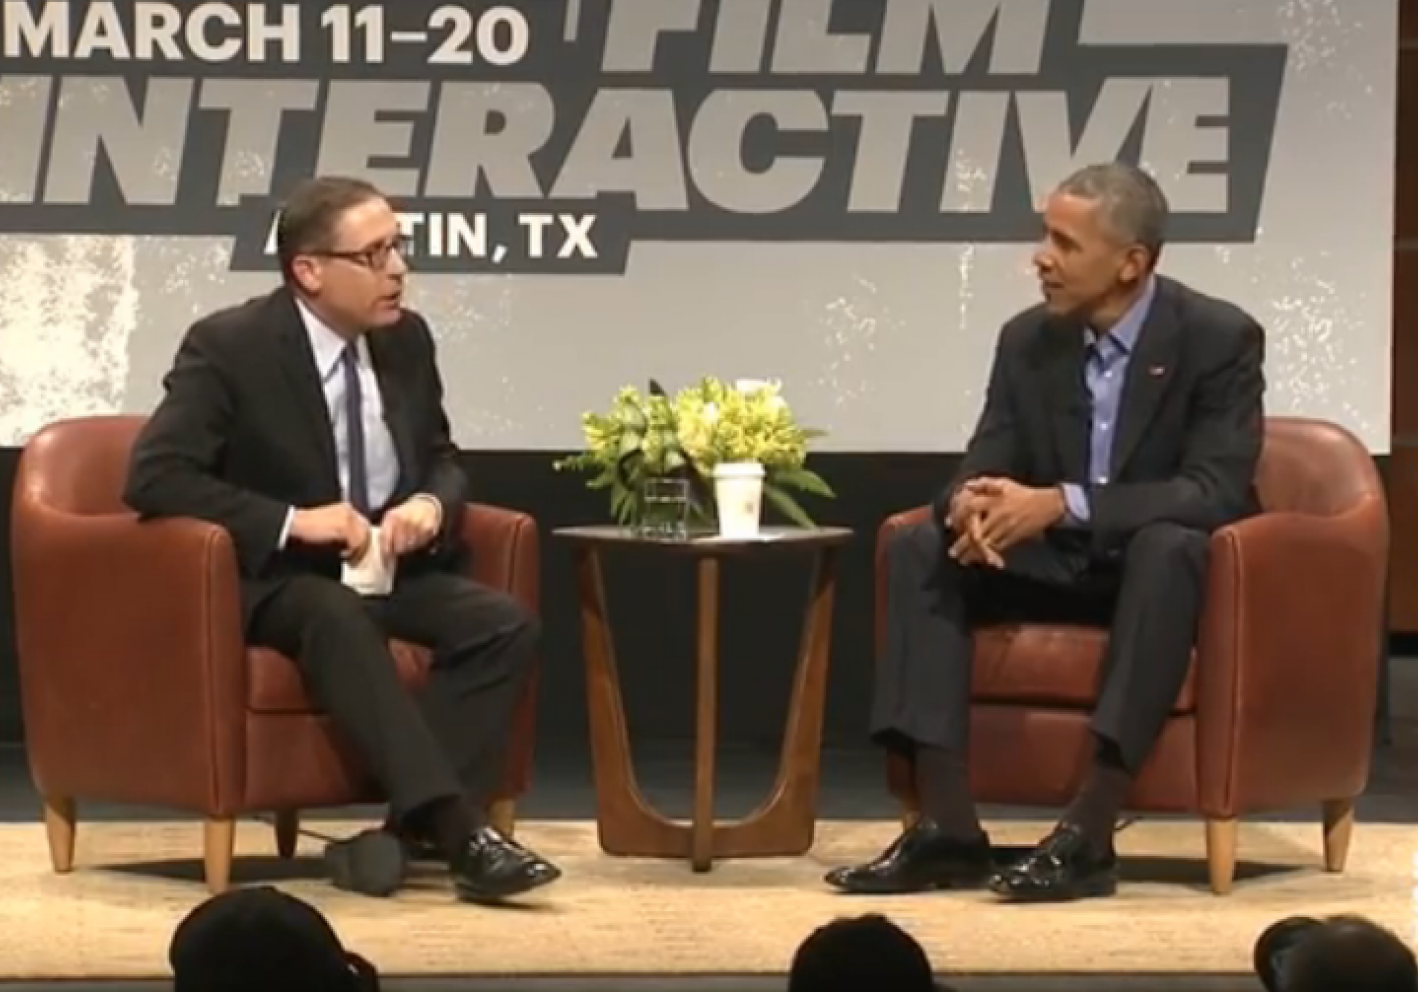 President Obama speaks at SXSW about the future of technology